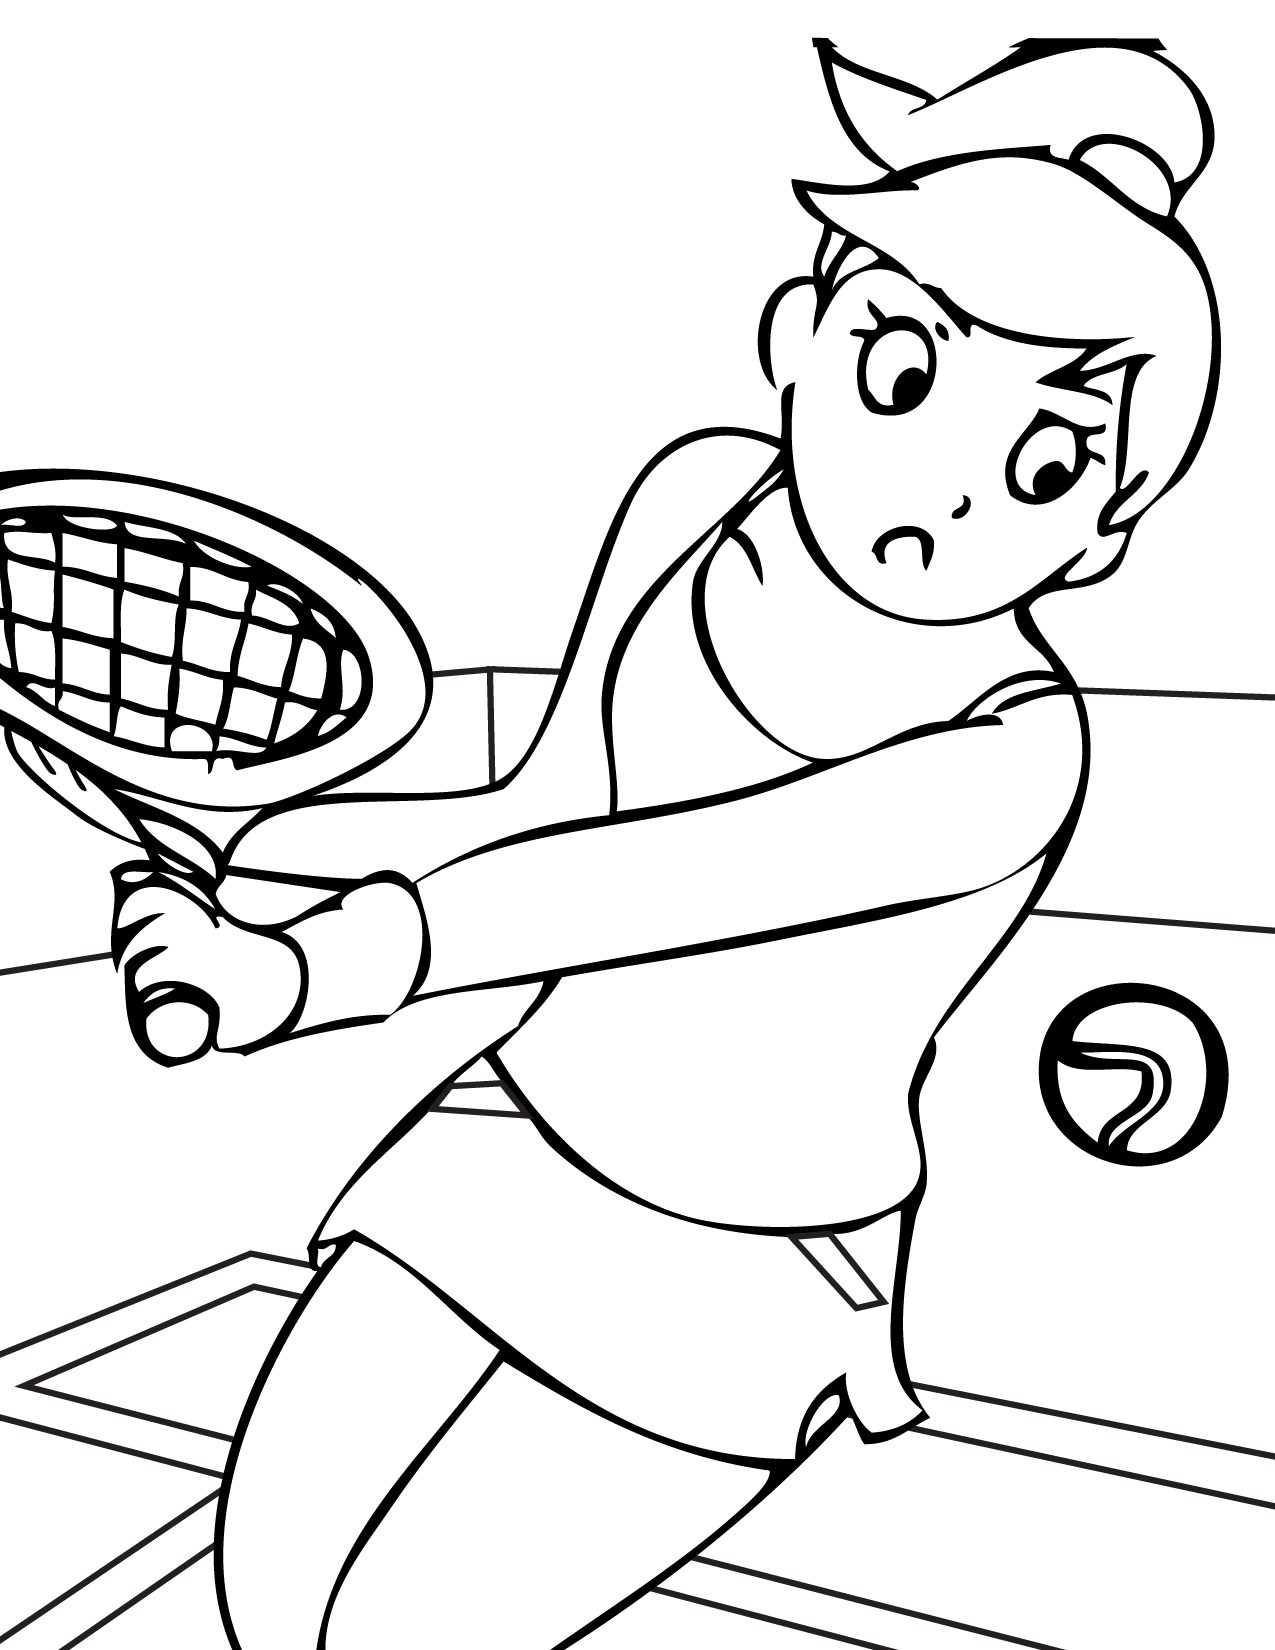 sport coloring pages to print - photo#1